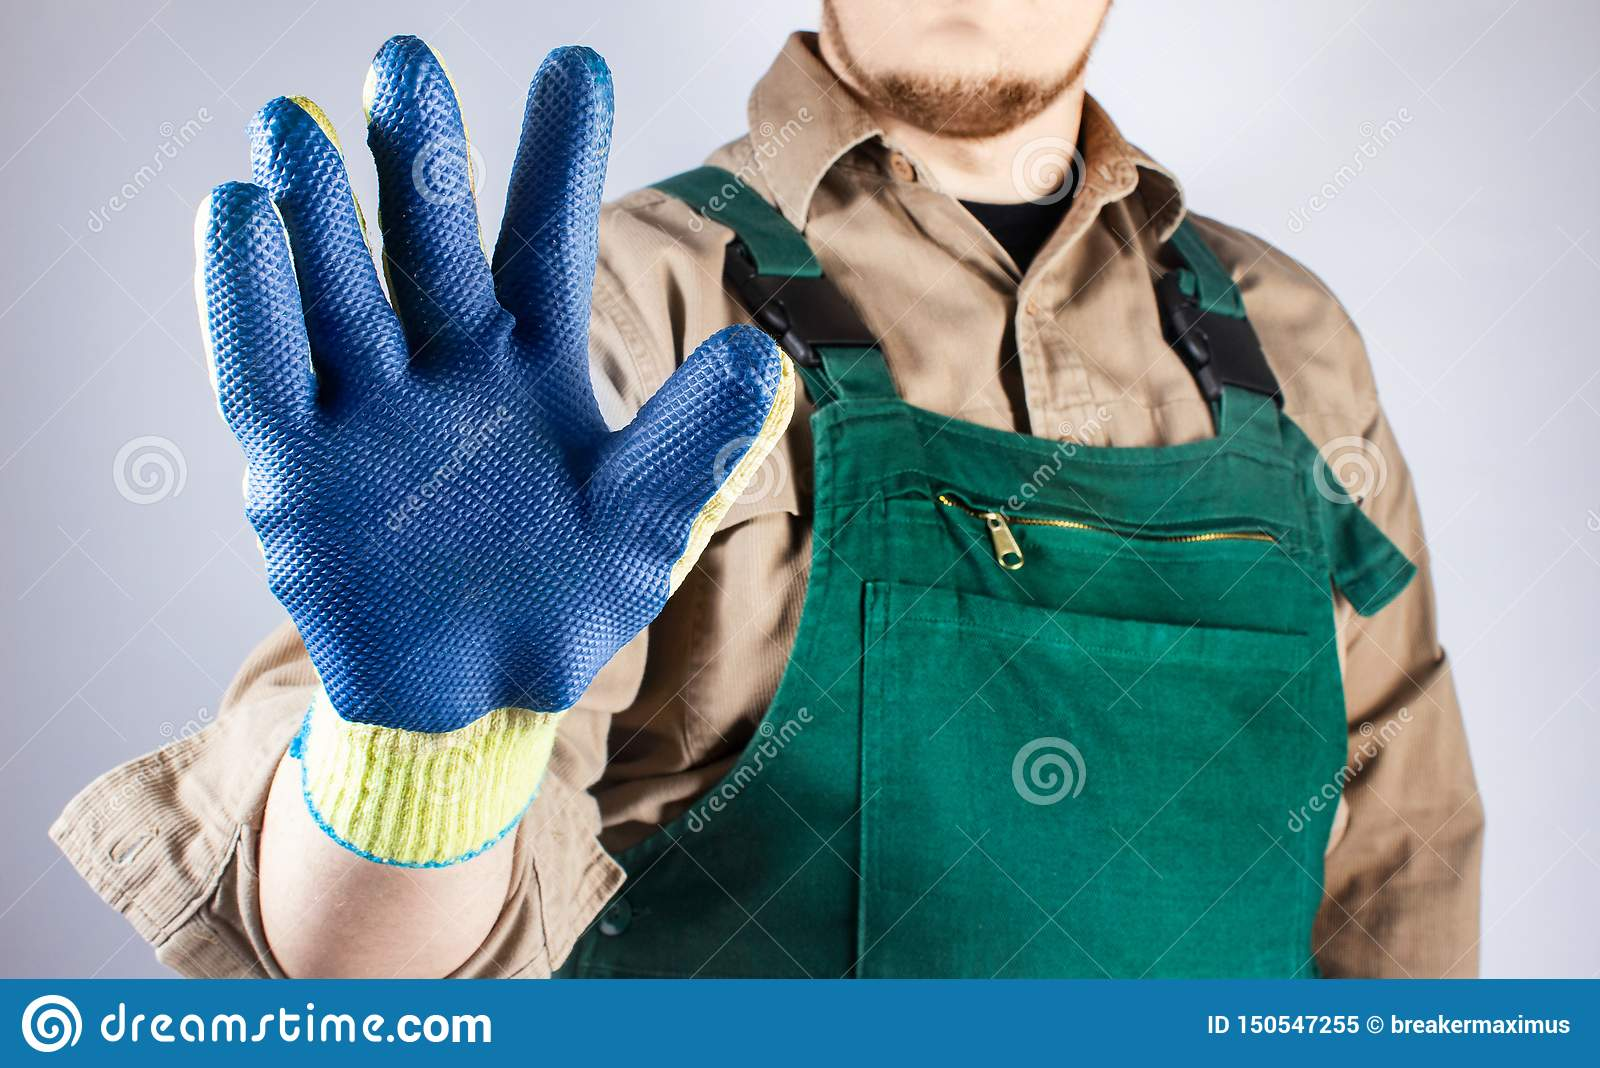 Worker in green overall outfit showing blue glove